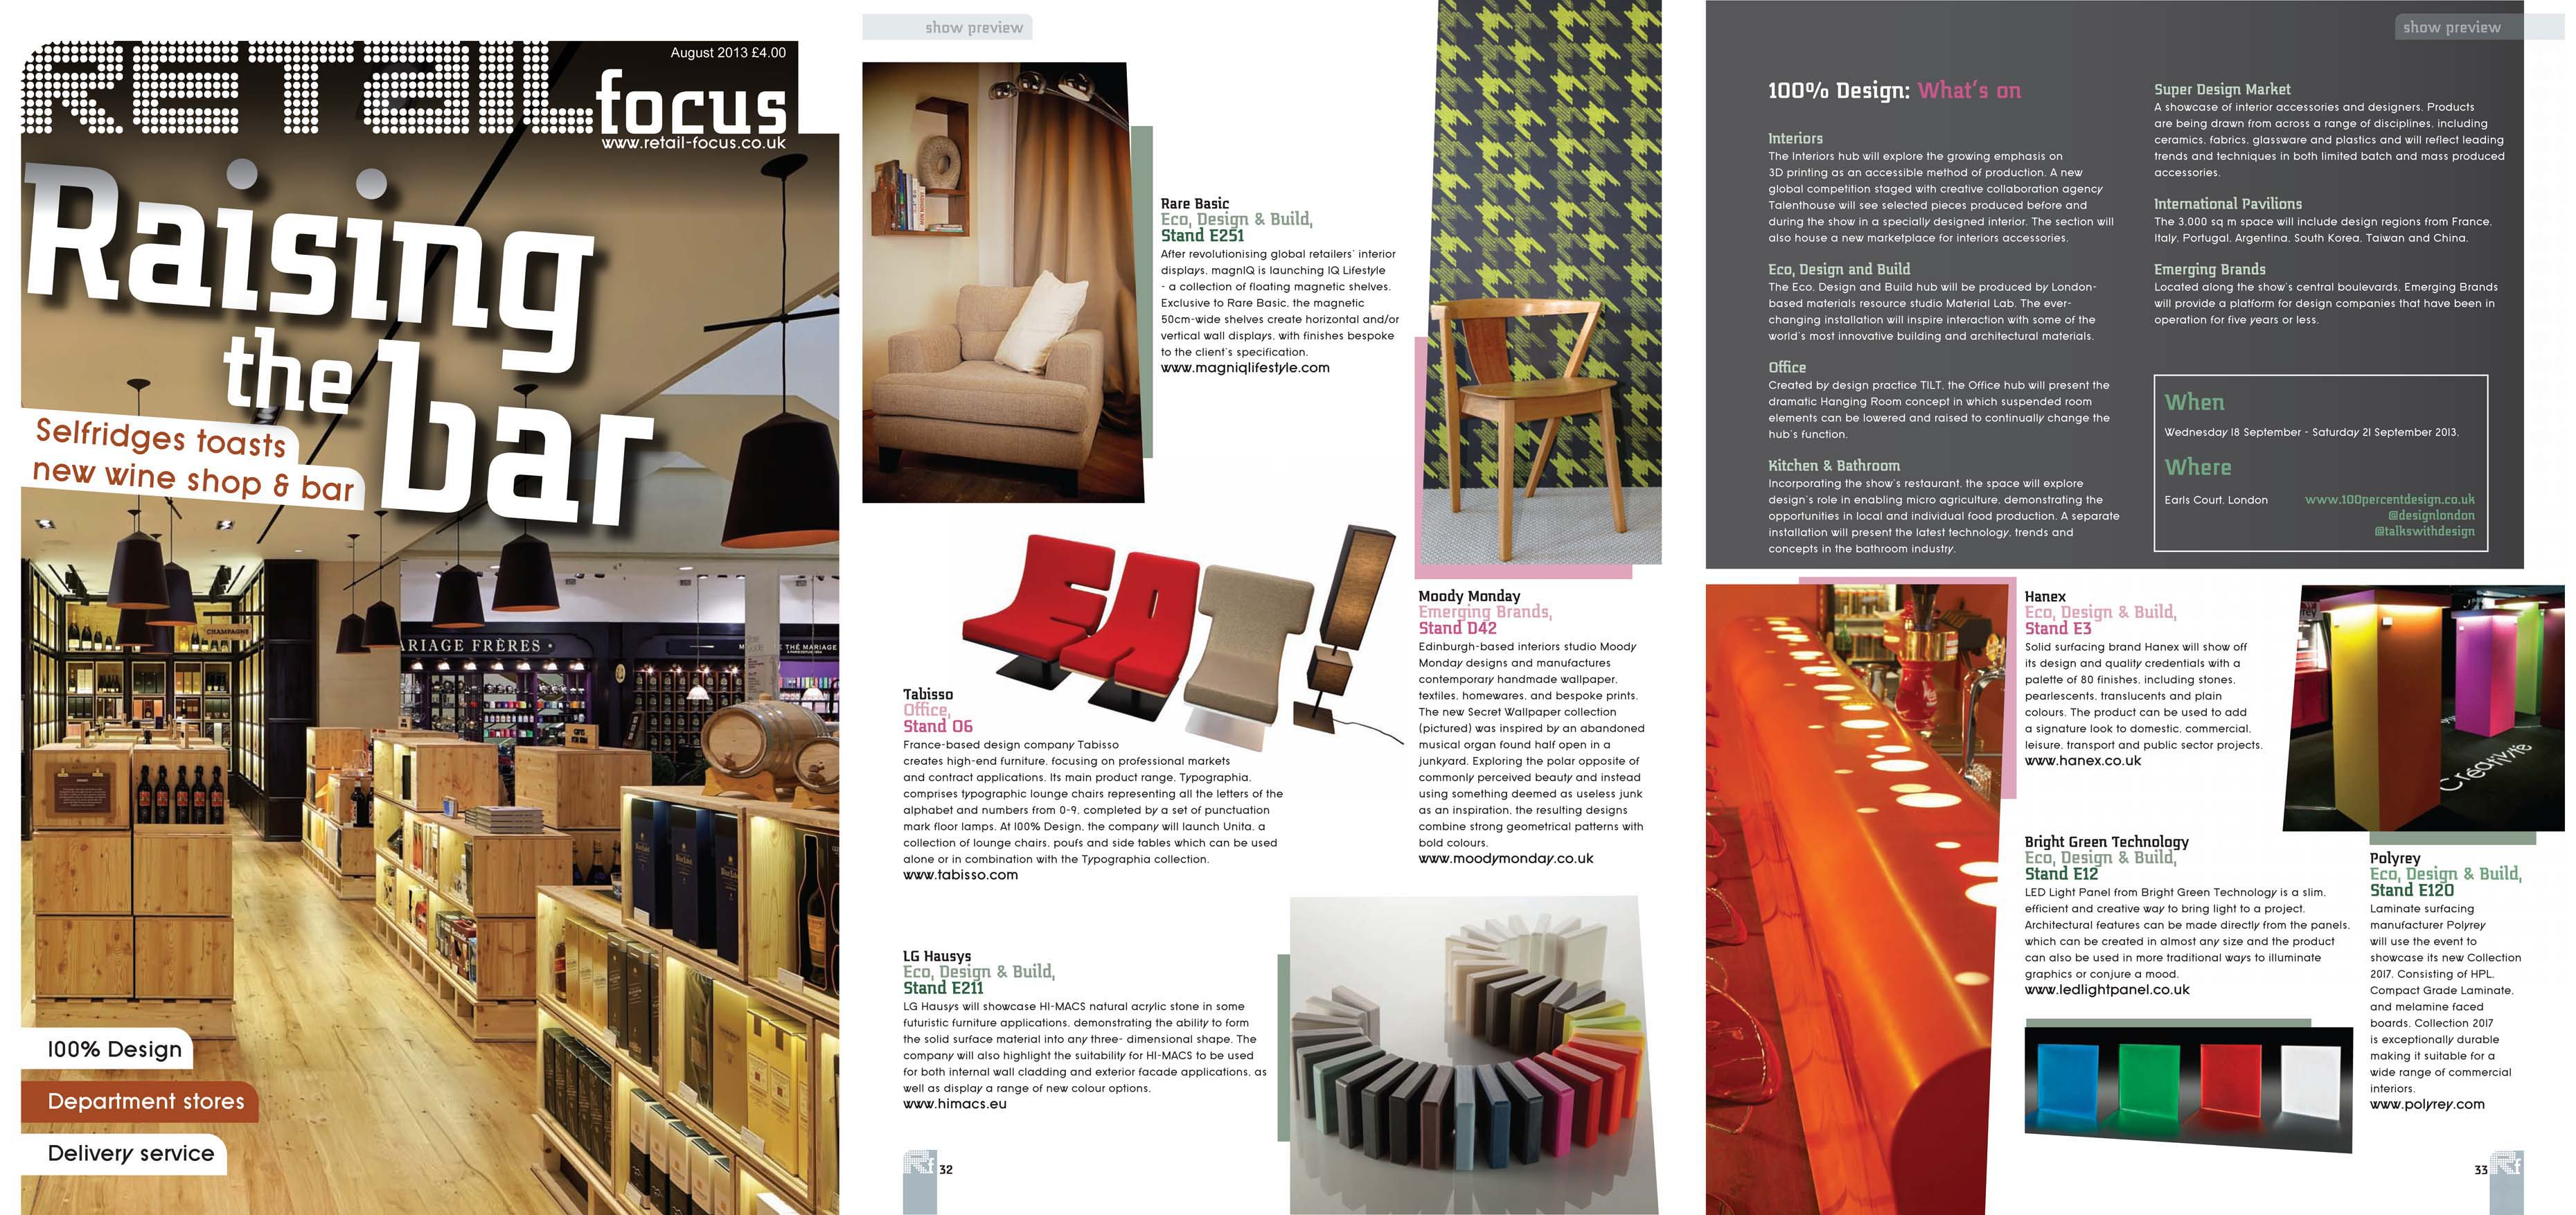 Retail Focus - August 2013